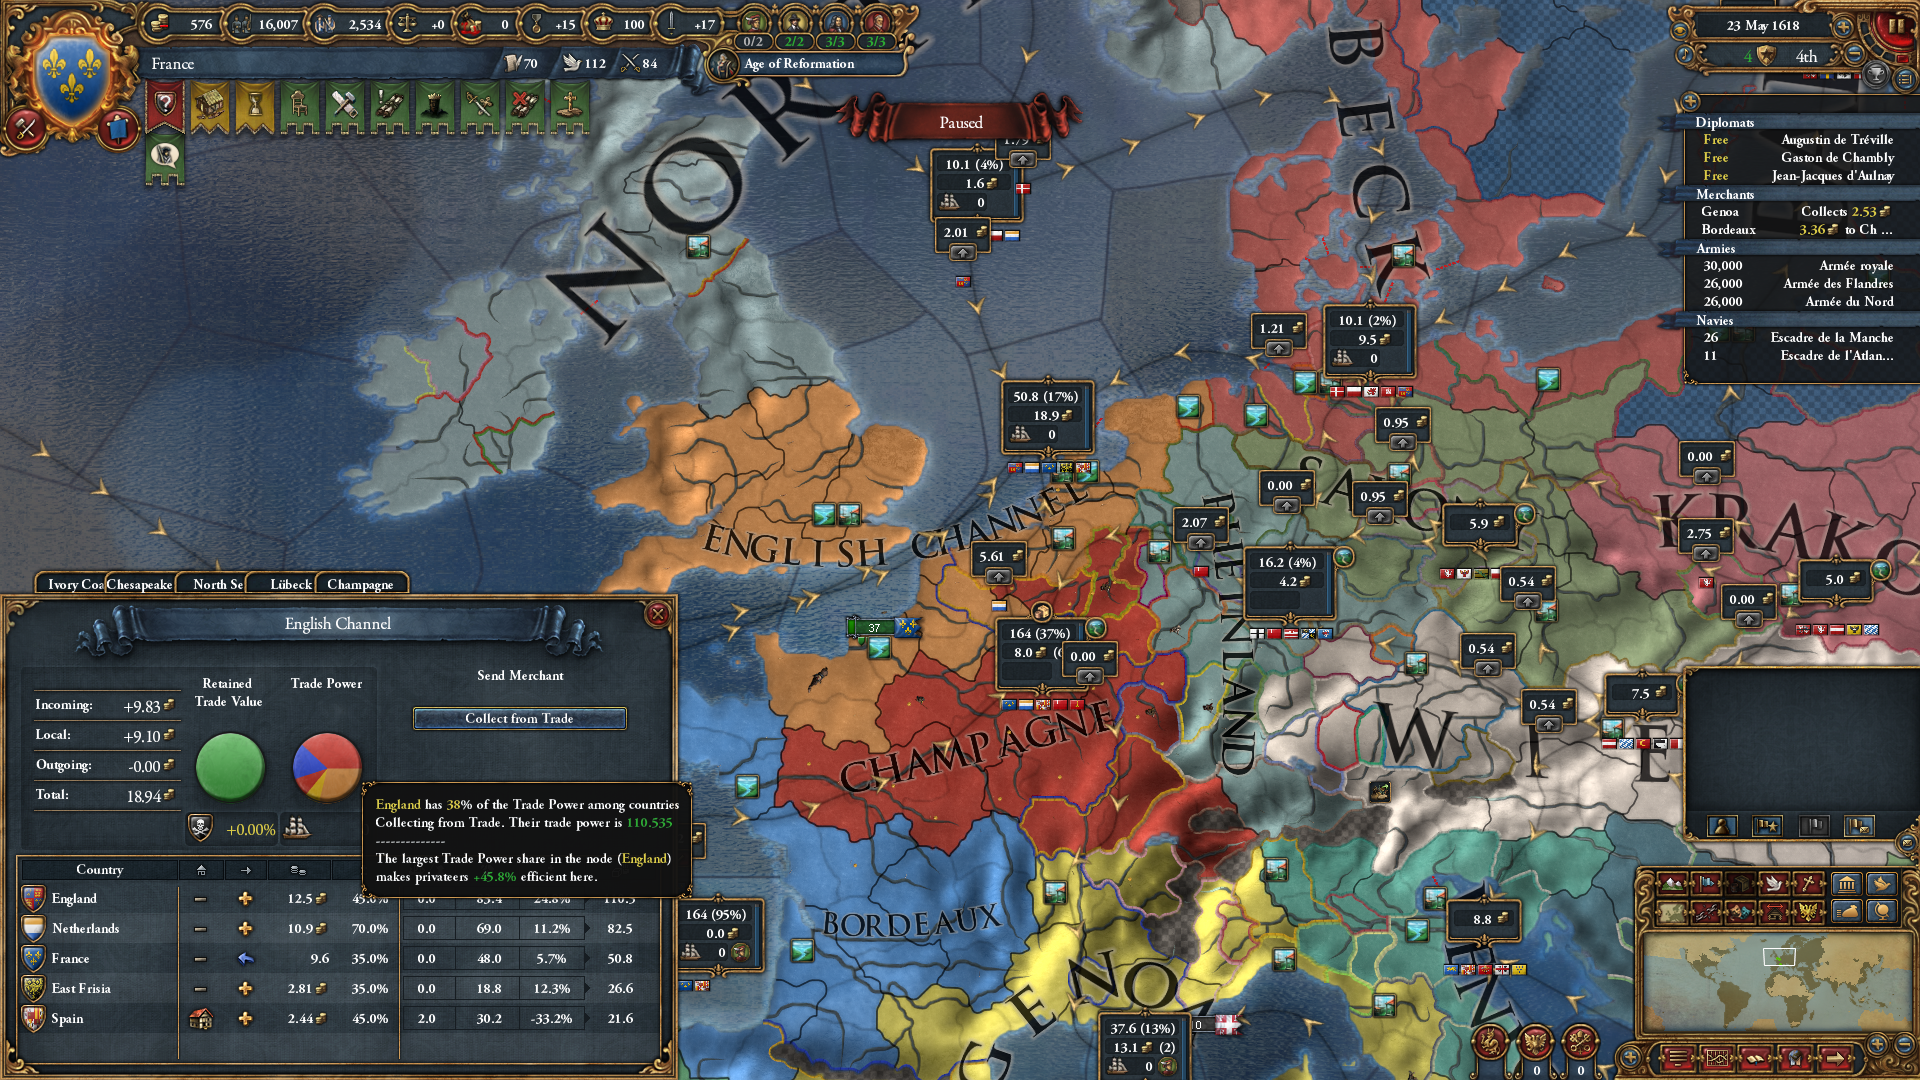 Honours Blog #8 – Intro to EU4 and Paradox Interactive